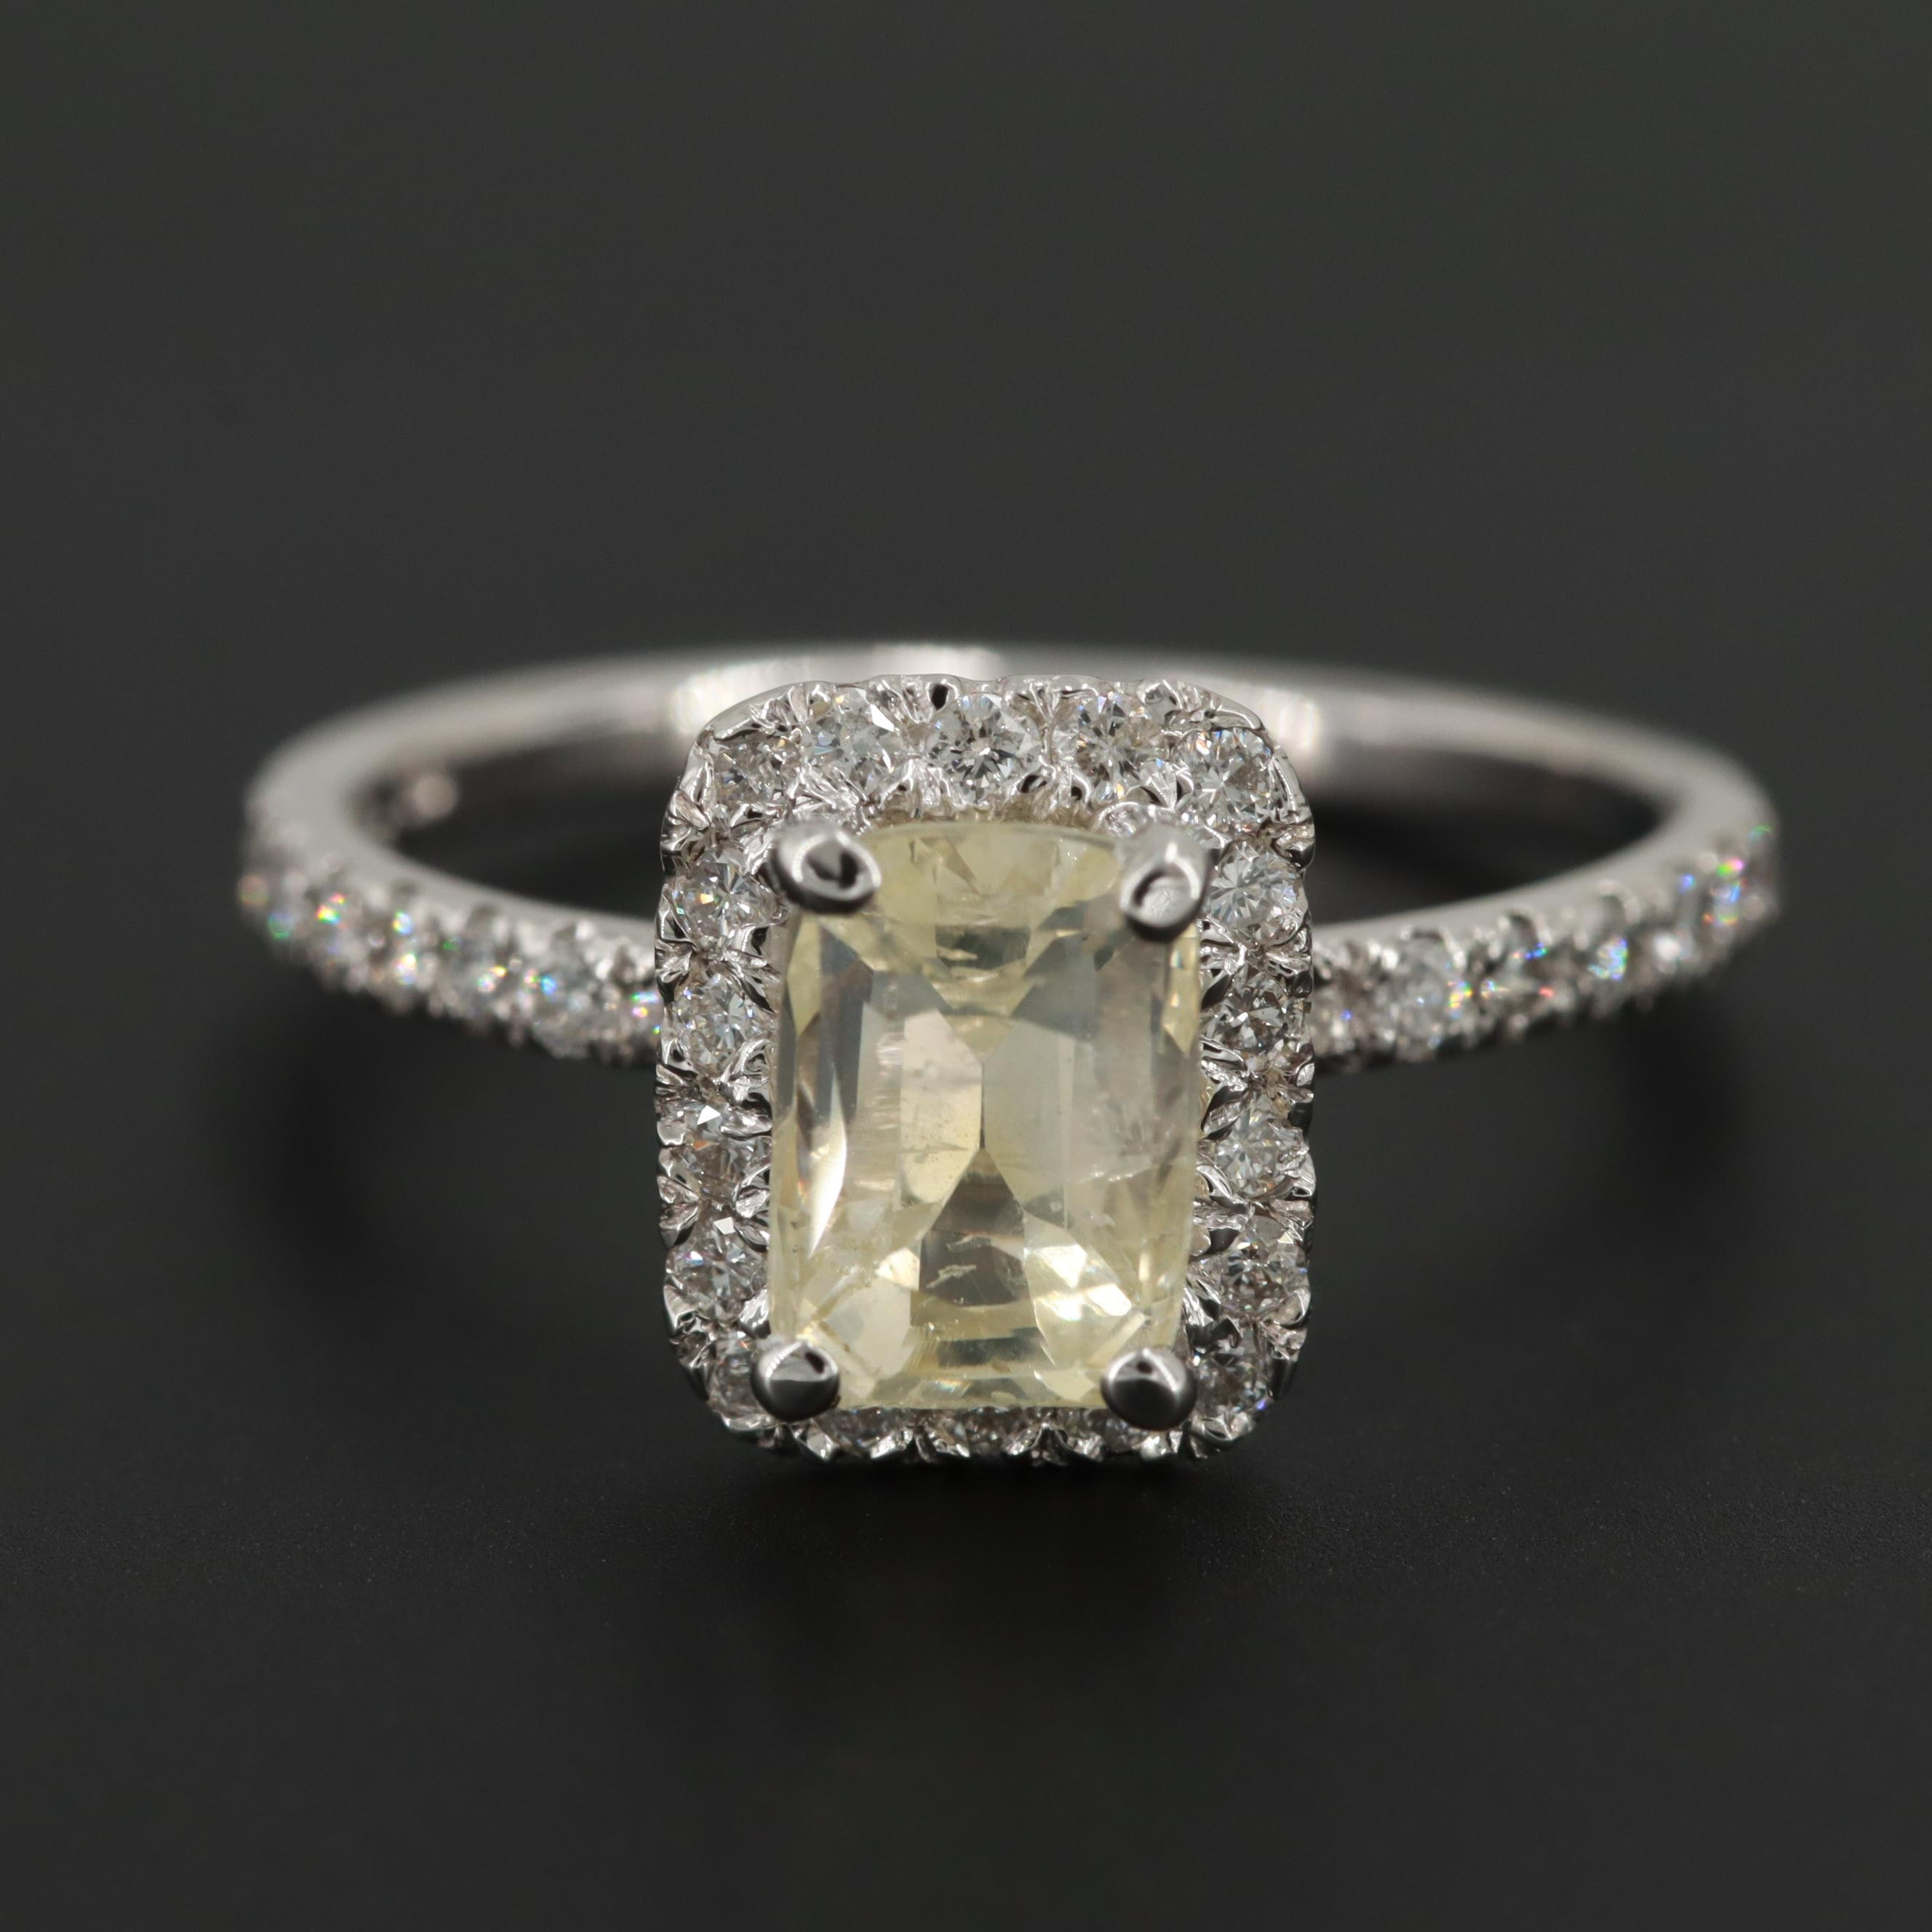 14K White Gold 2.07 CT Unheated Yellow Sapphire and Diamond Ring with GIA Report